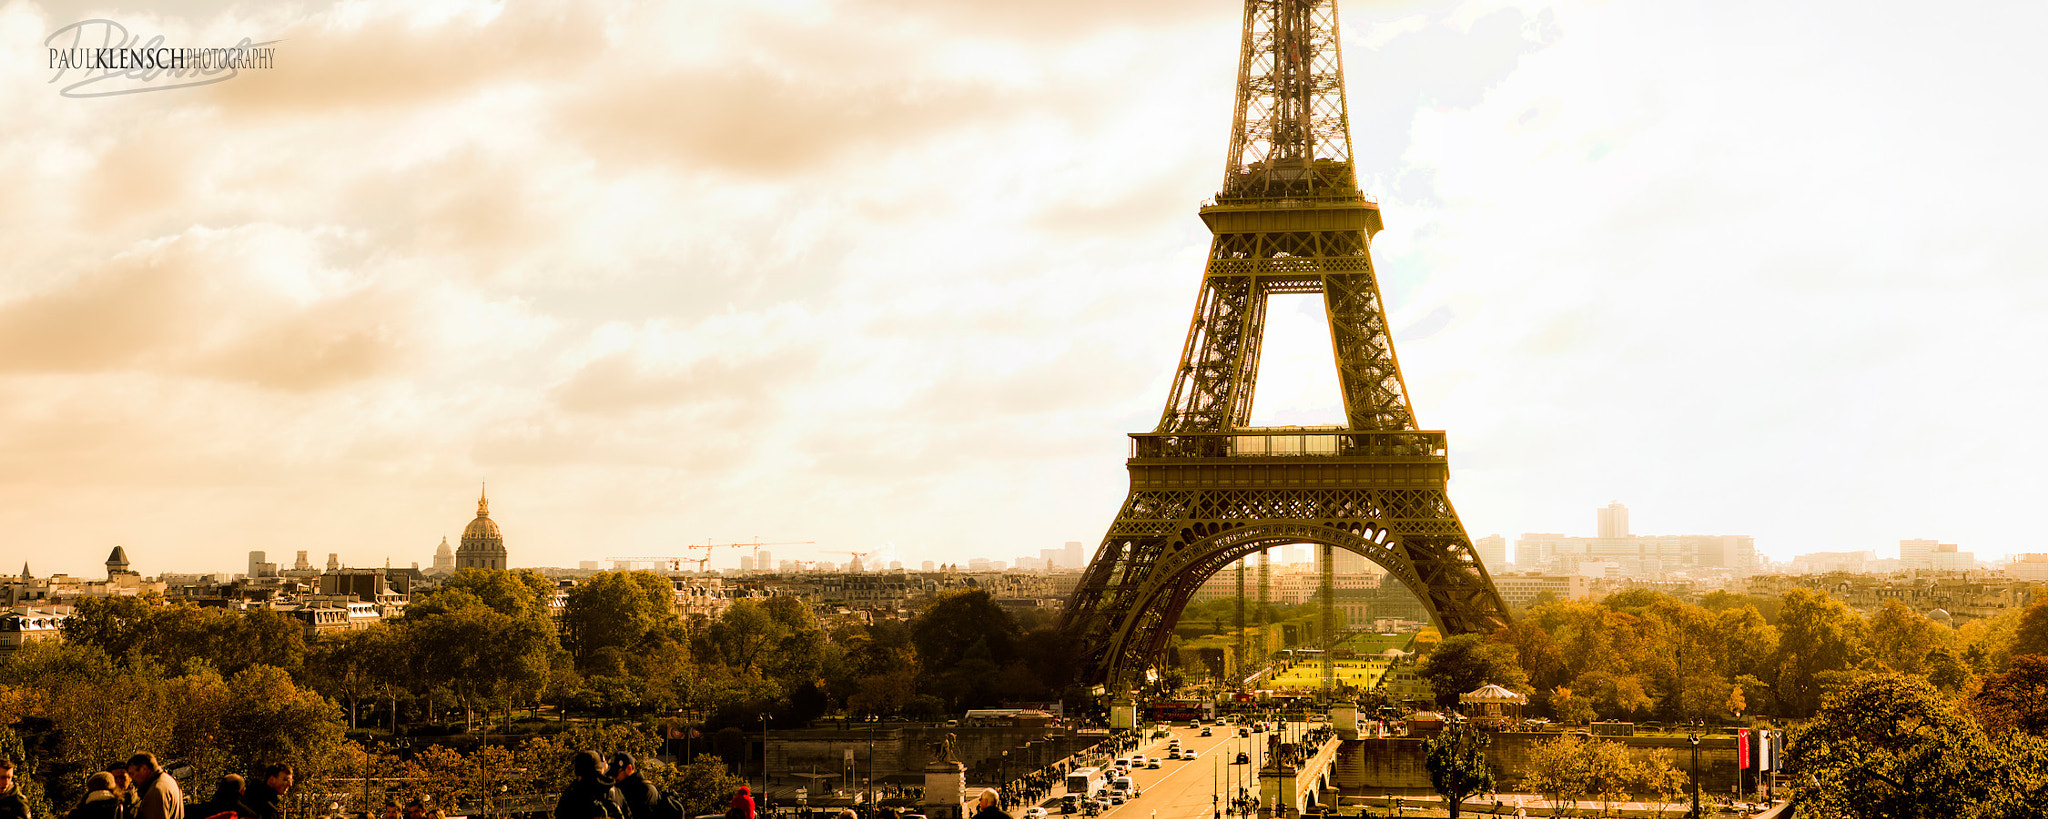 Photograph The Eiffel by Paul Klensch on 500px